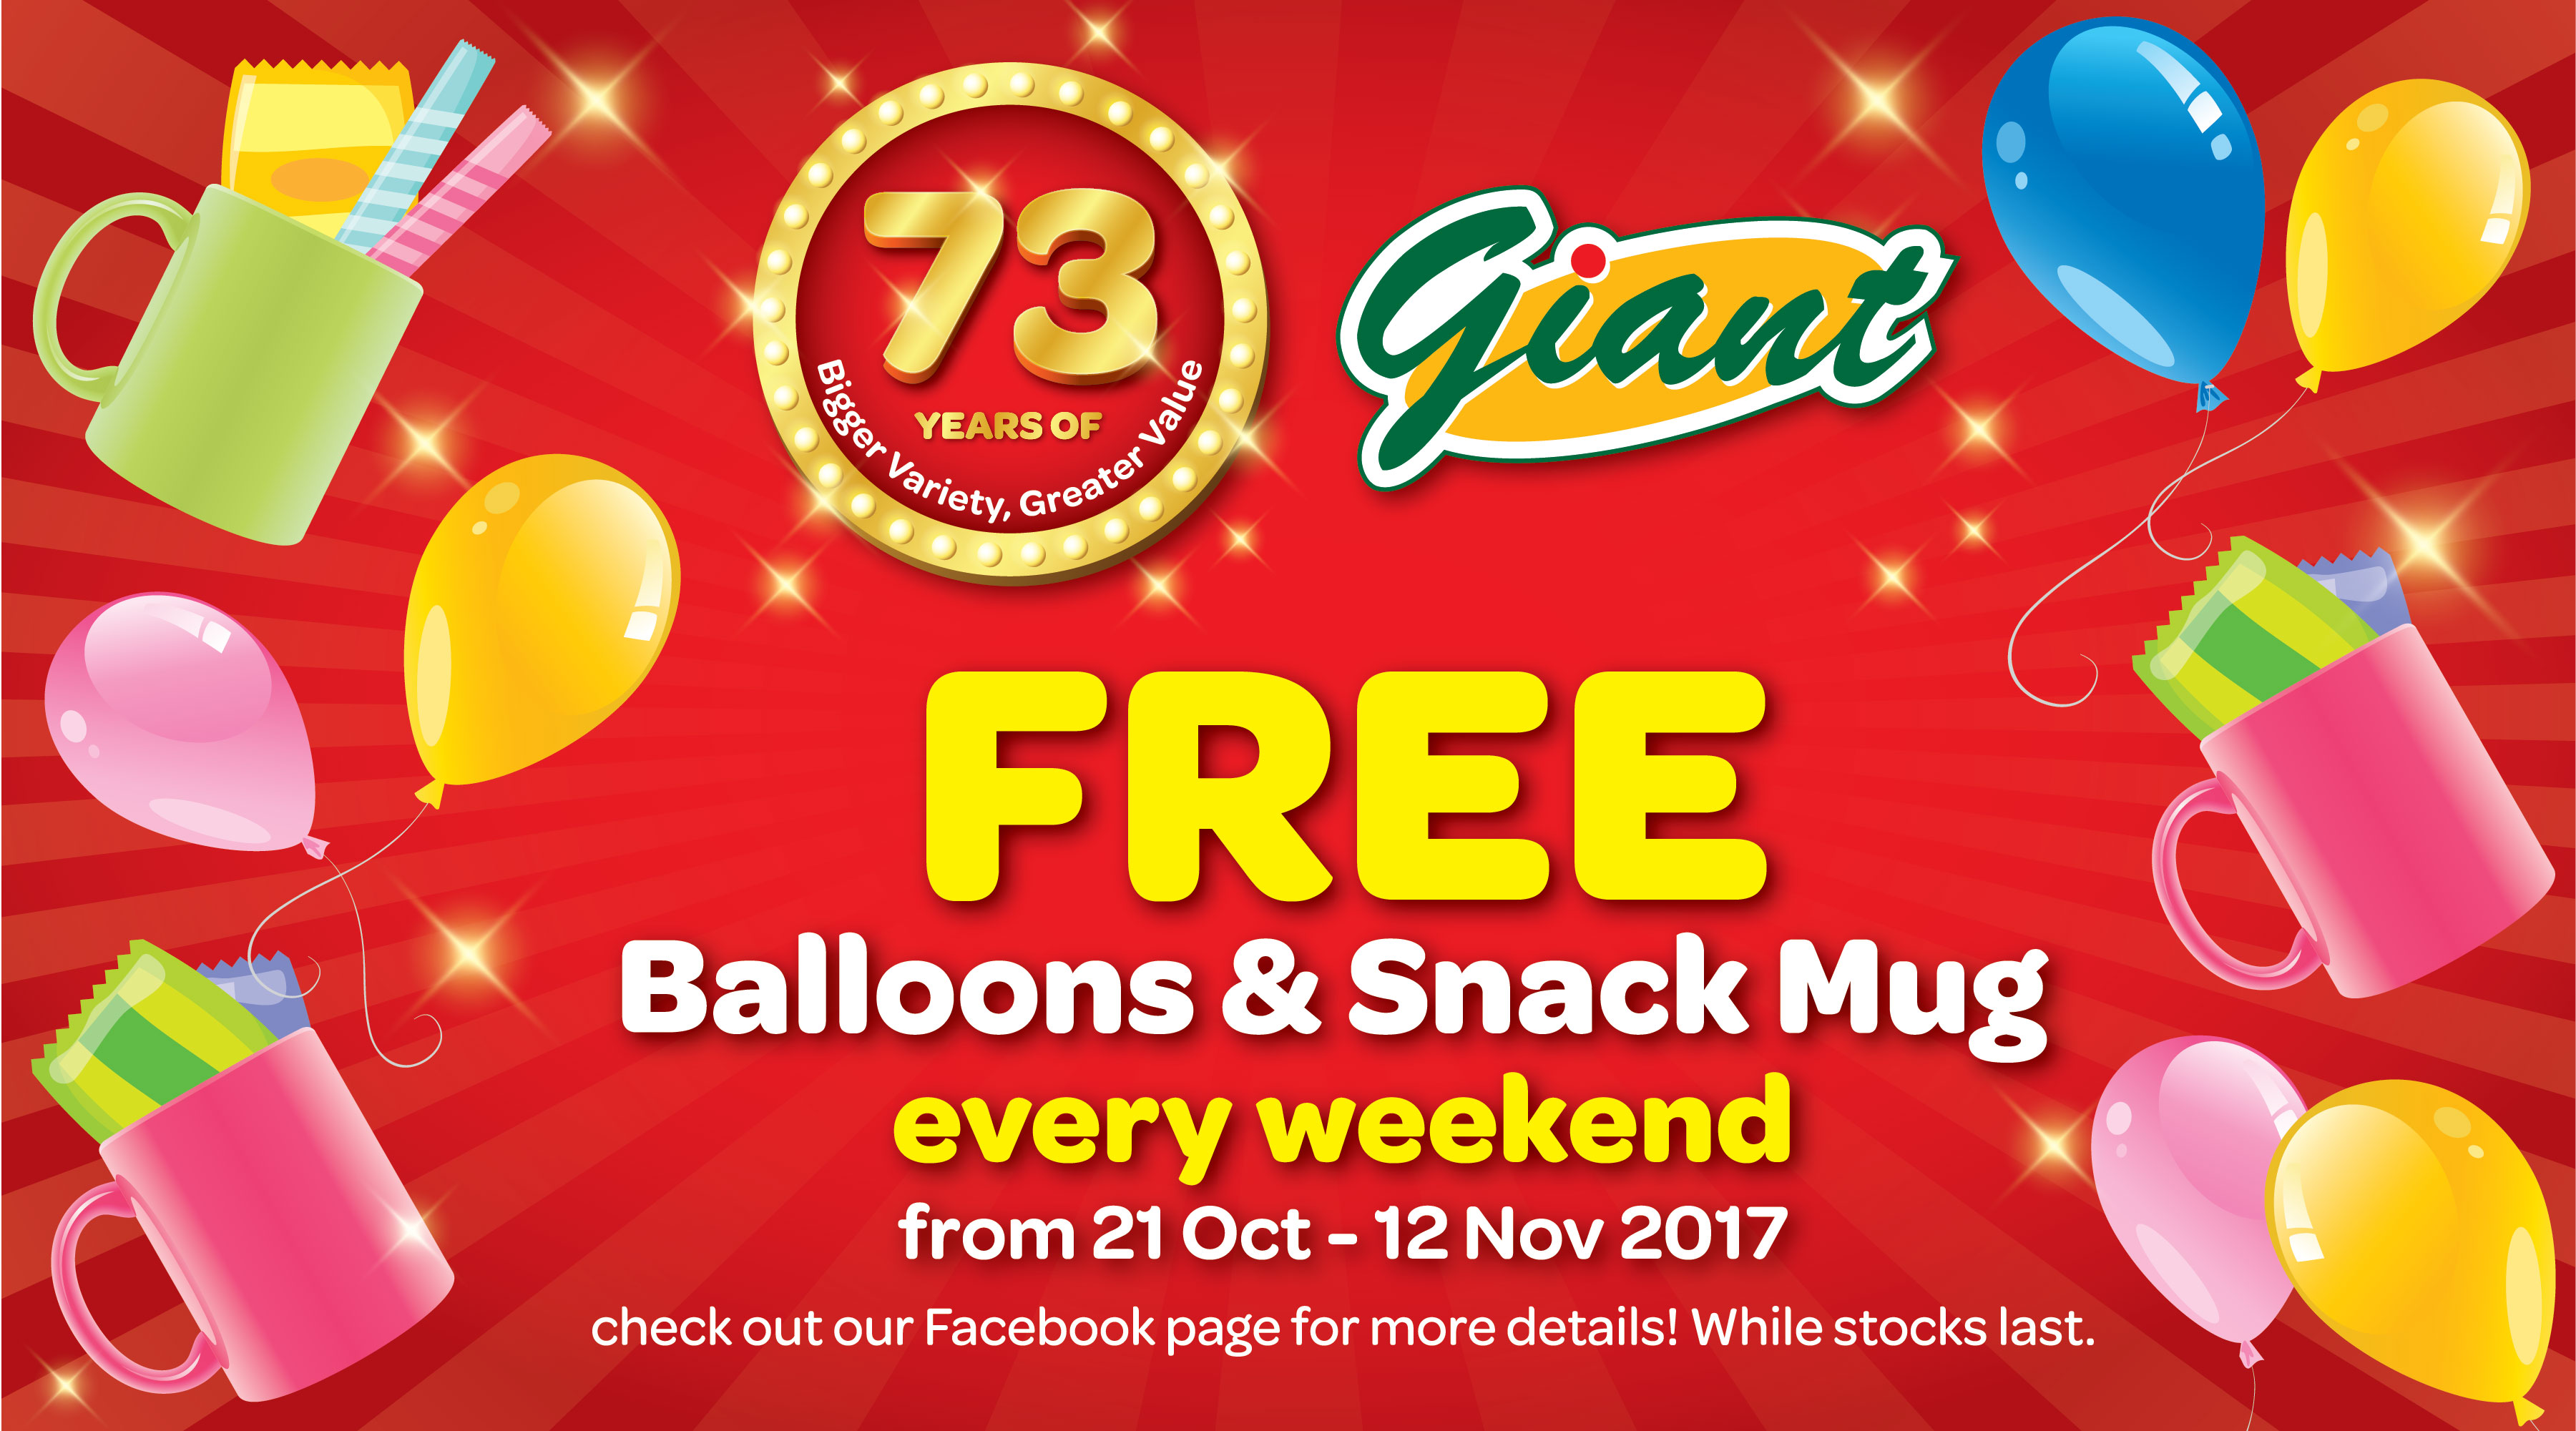 Giant October Promotion